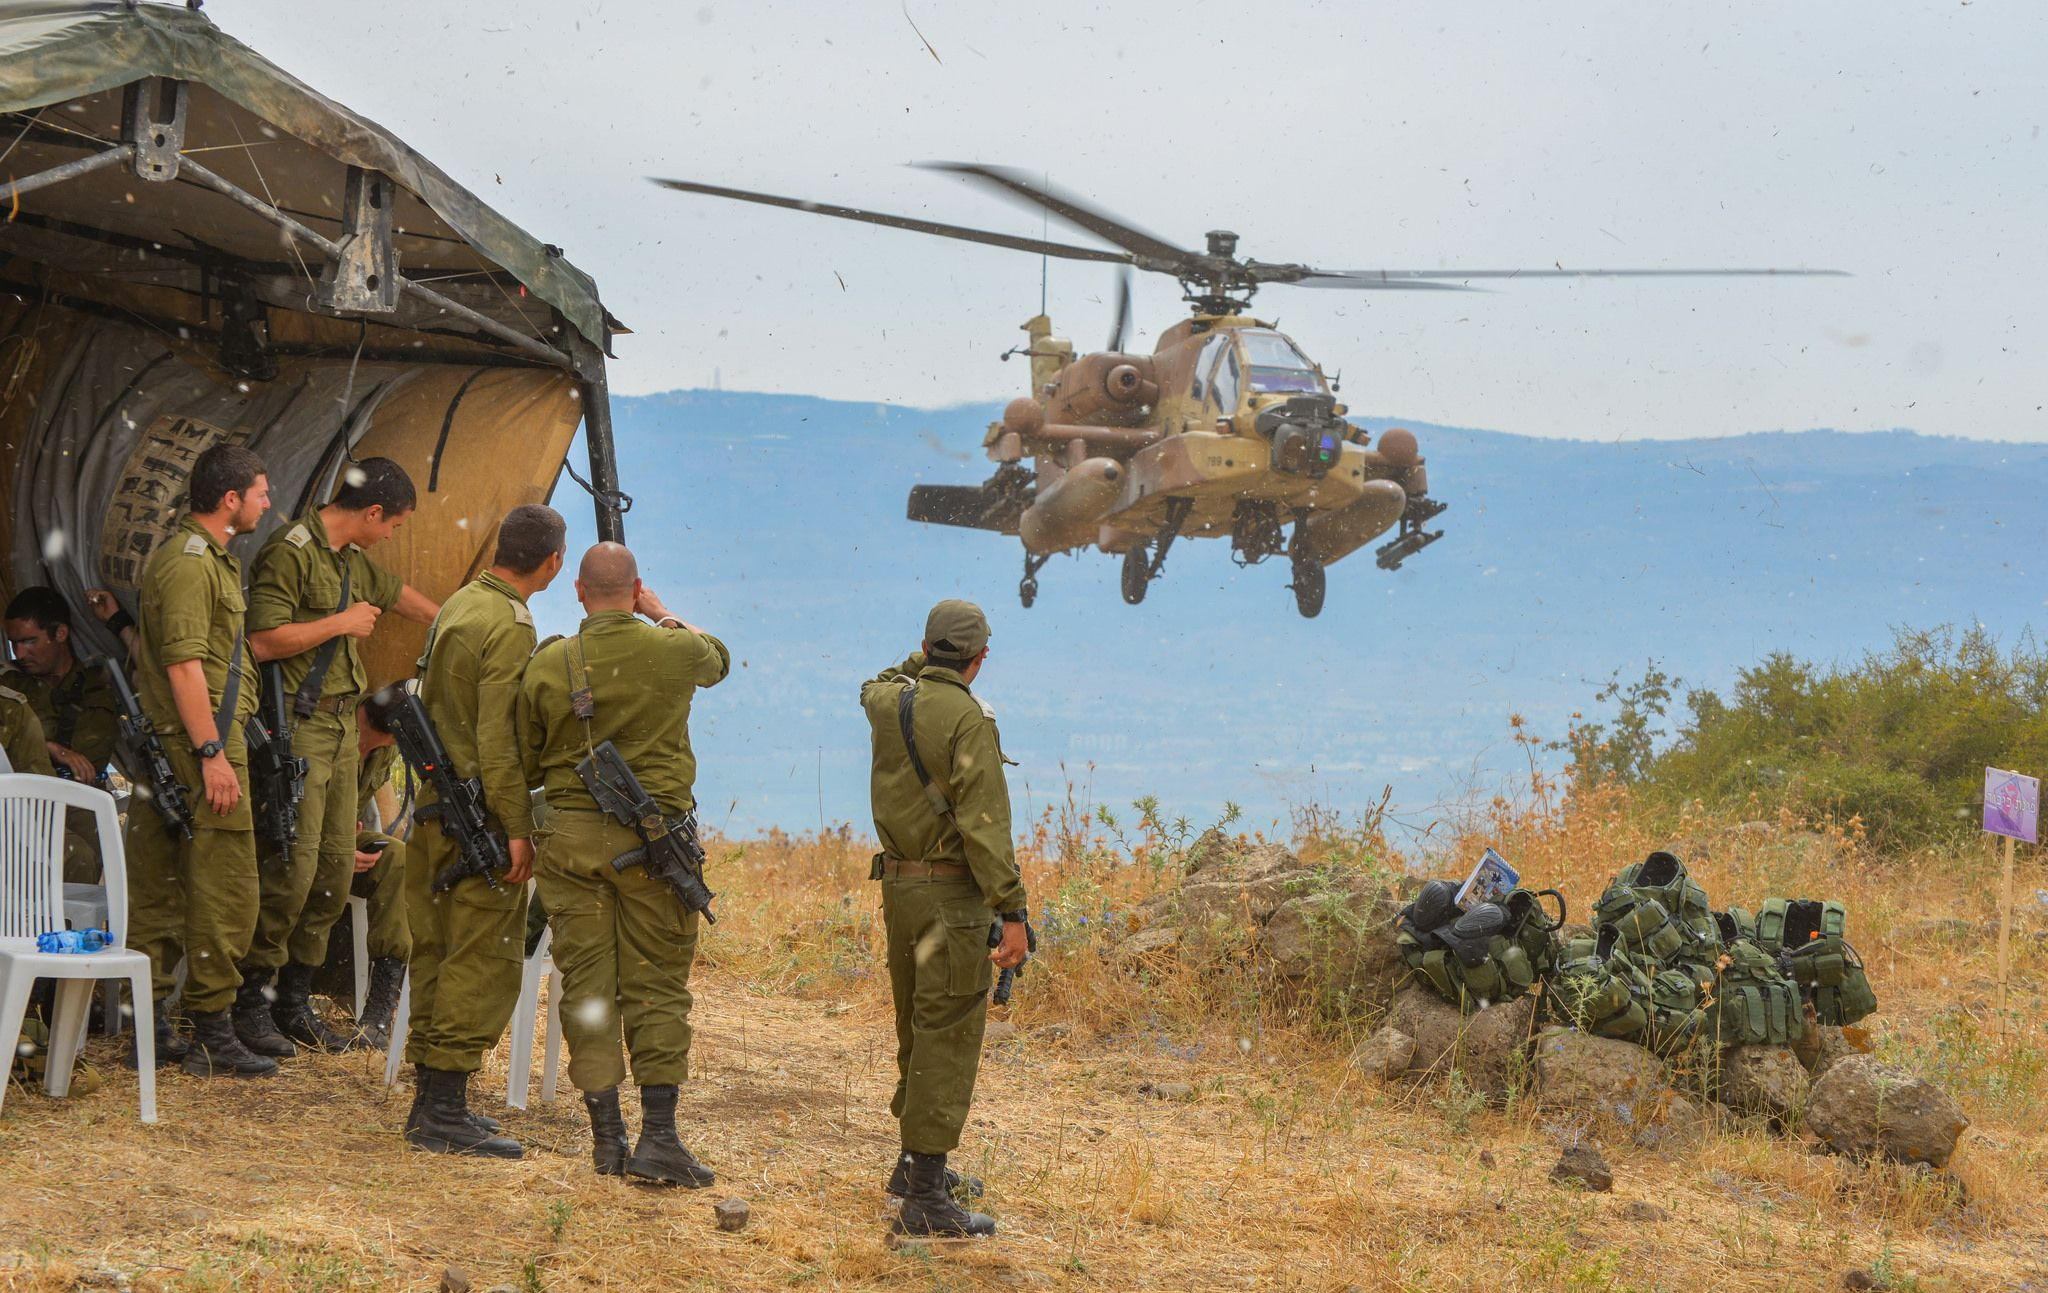 Soldiers of the Givati Brigade cooperate with the IAF